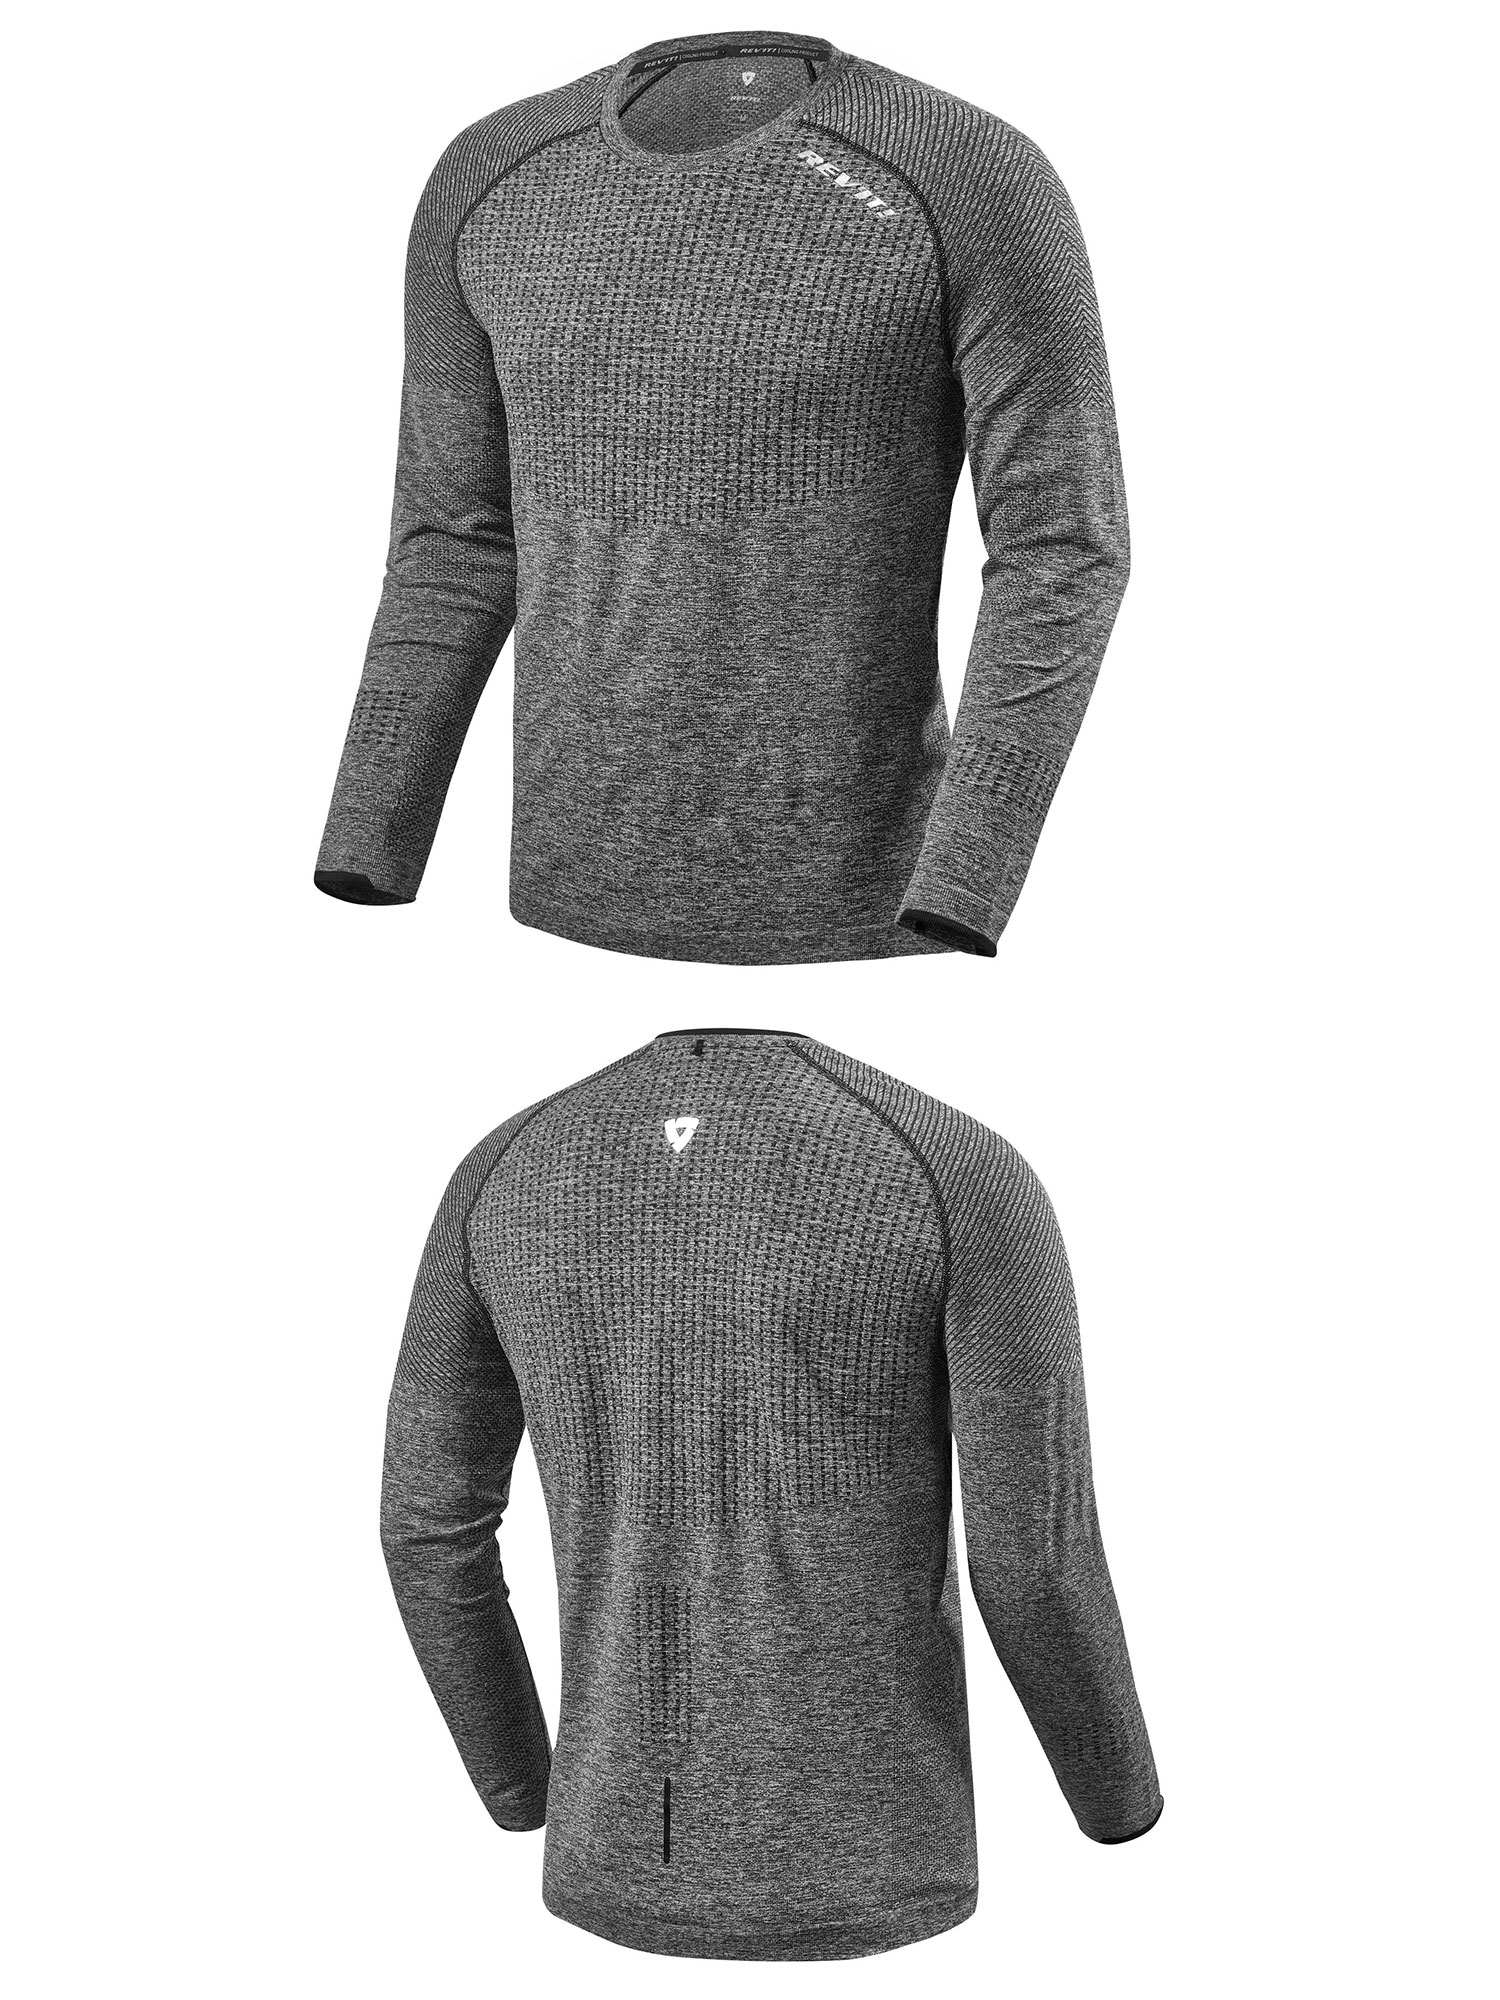 REV'IT! Airborne LS Motorcycle Base Layer Shirt